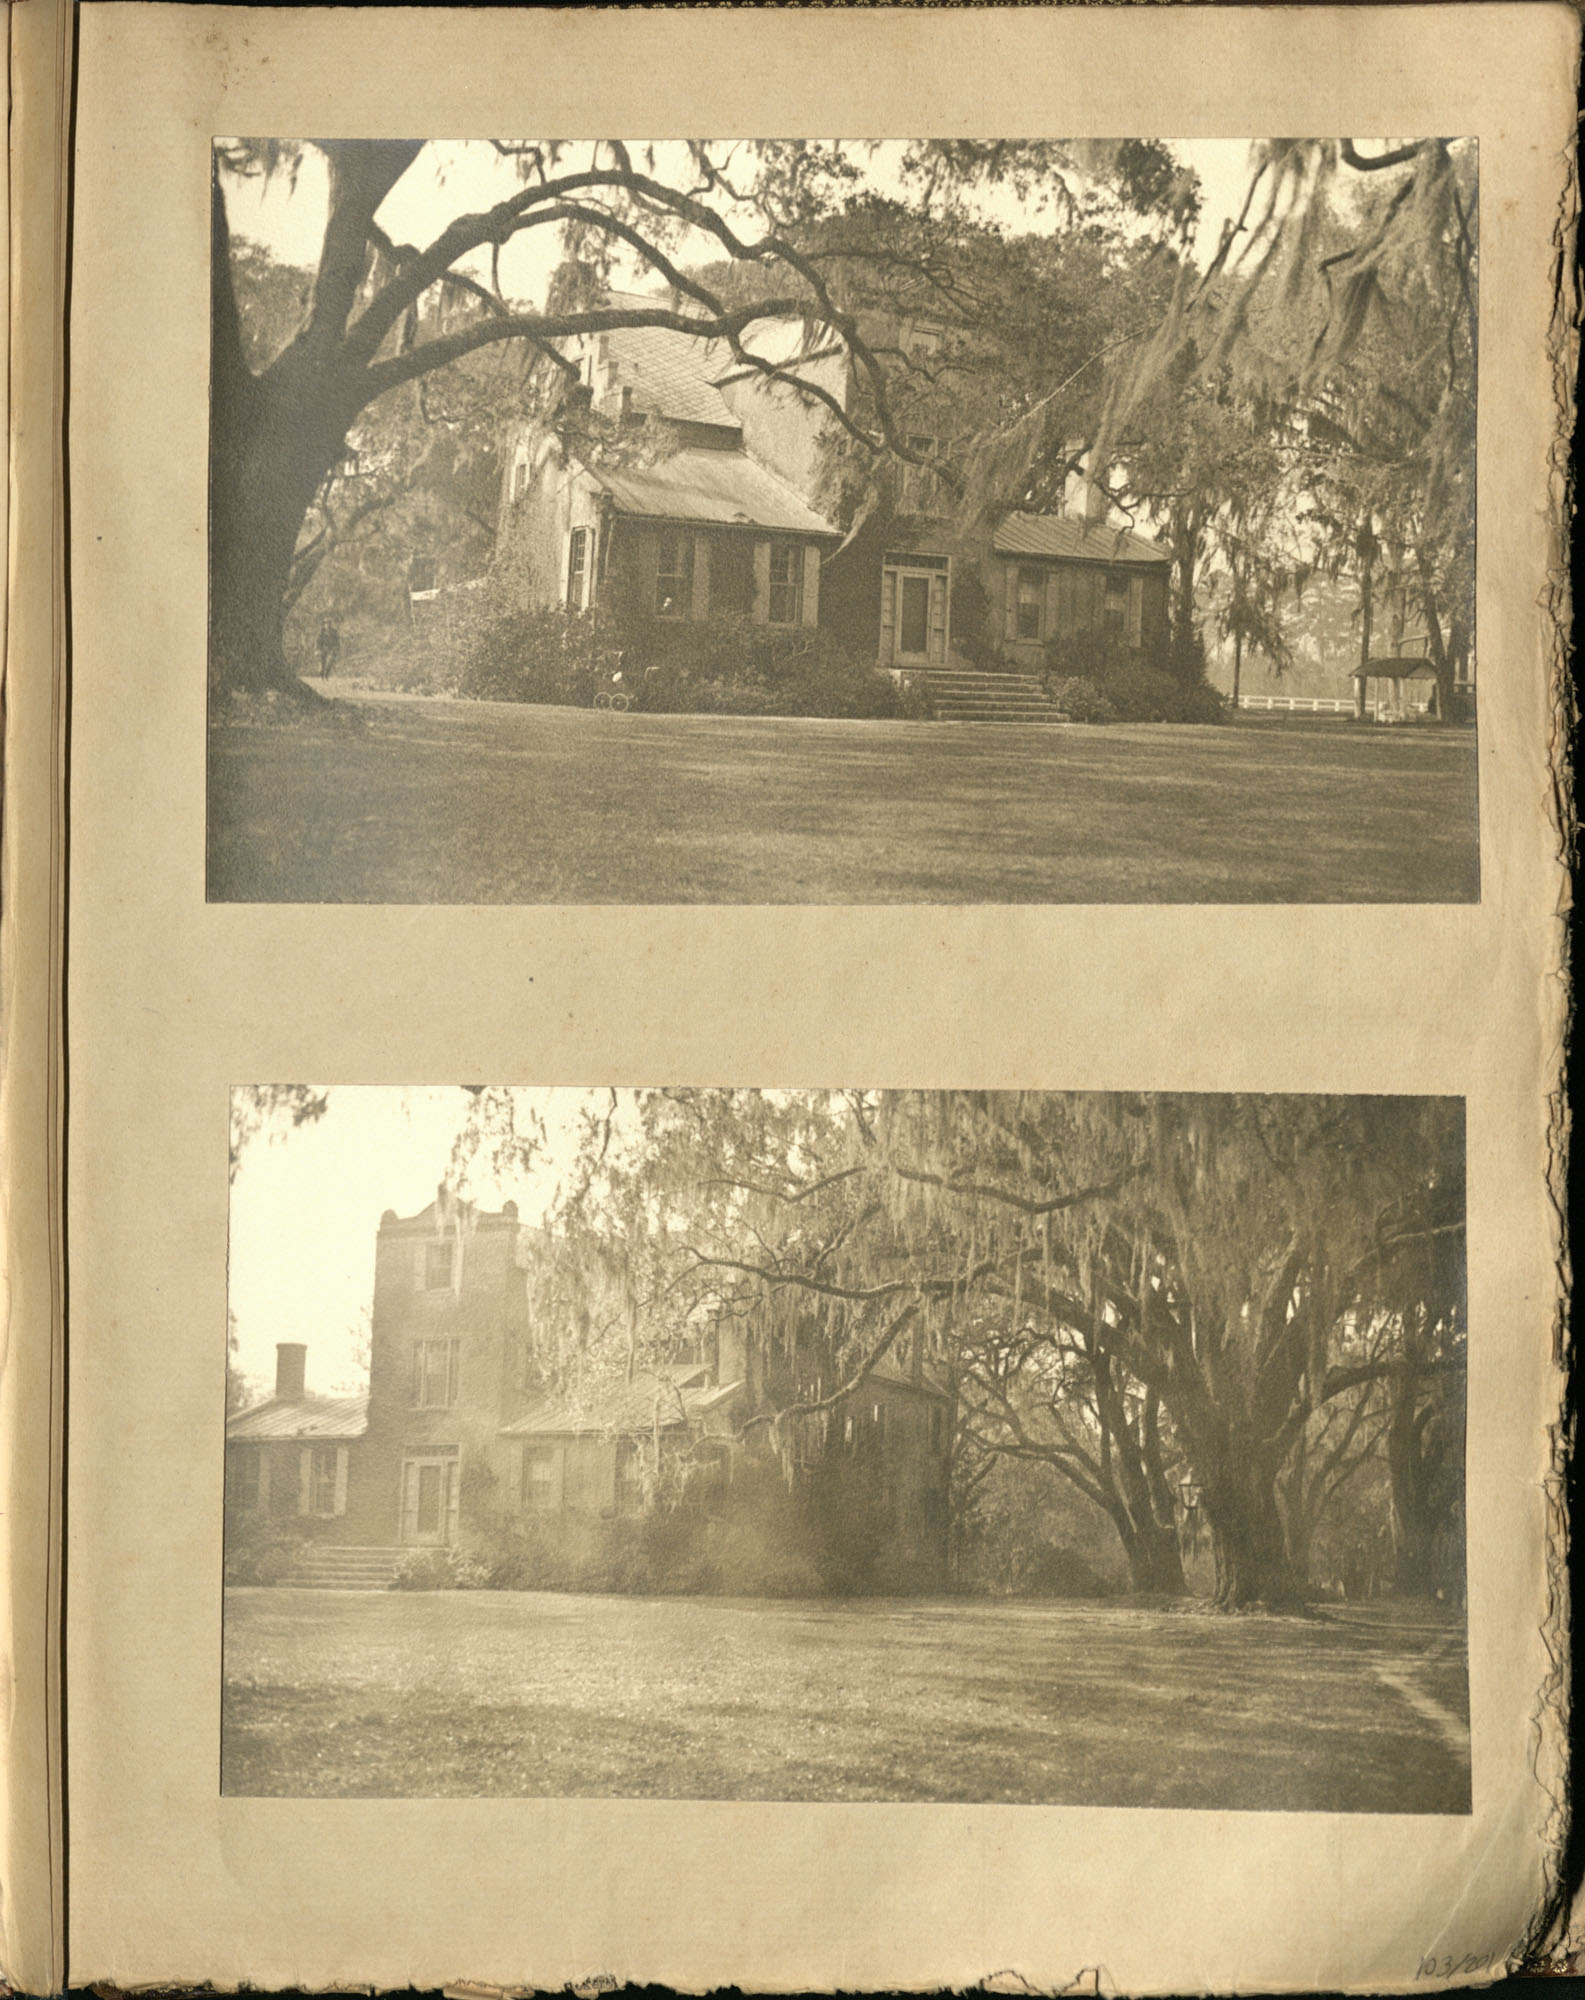 Early Medway and travels album, 1929-1937, page 103